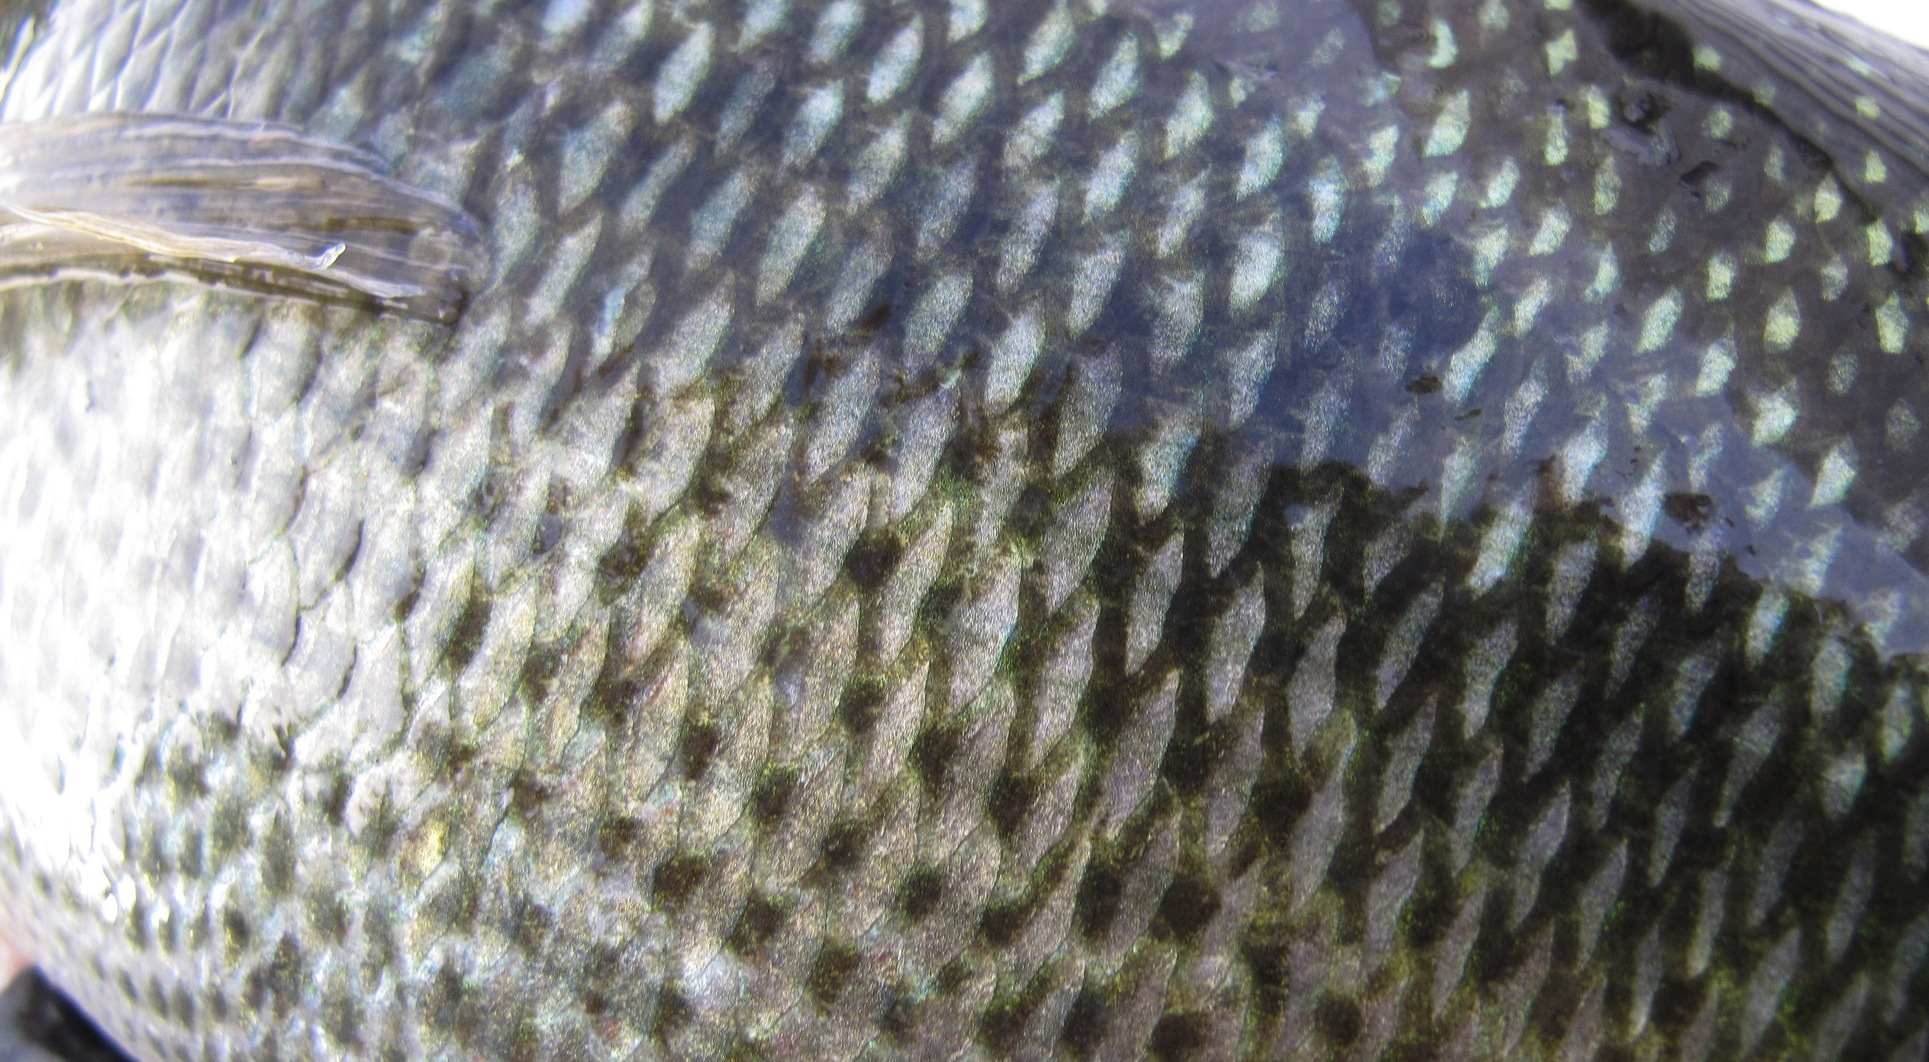 Written in the scales for List of fish with fins and scales